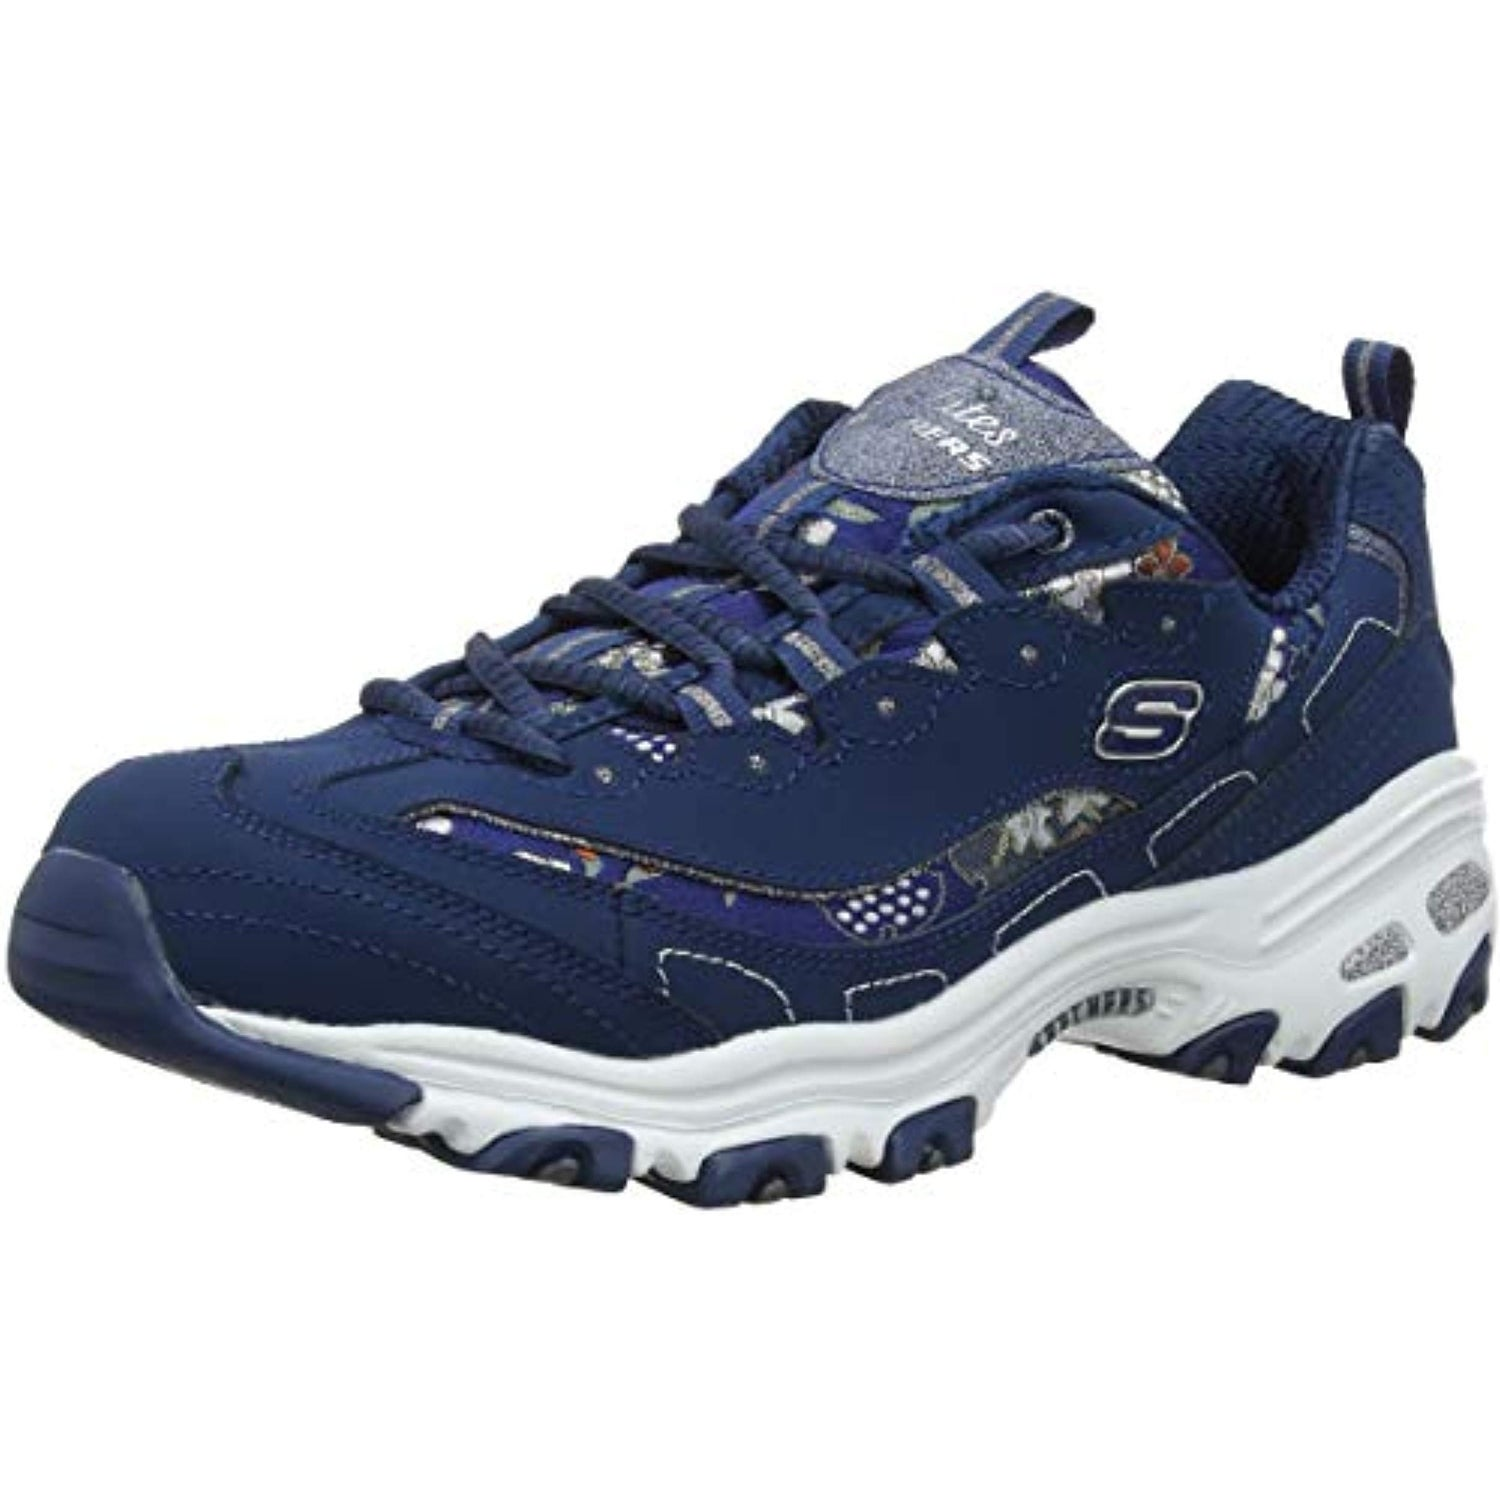 A bordo Cambios de Pizza  Skechers D'Lites Floral Days Womens Sneakers Navy 9.5 - Overstock - 30072364